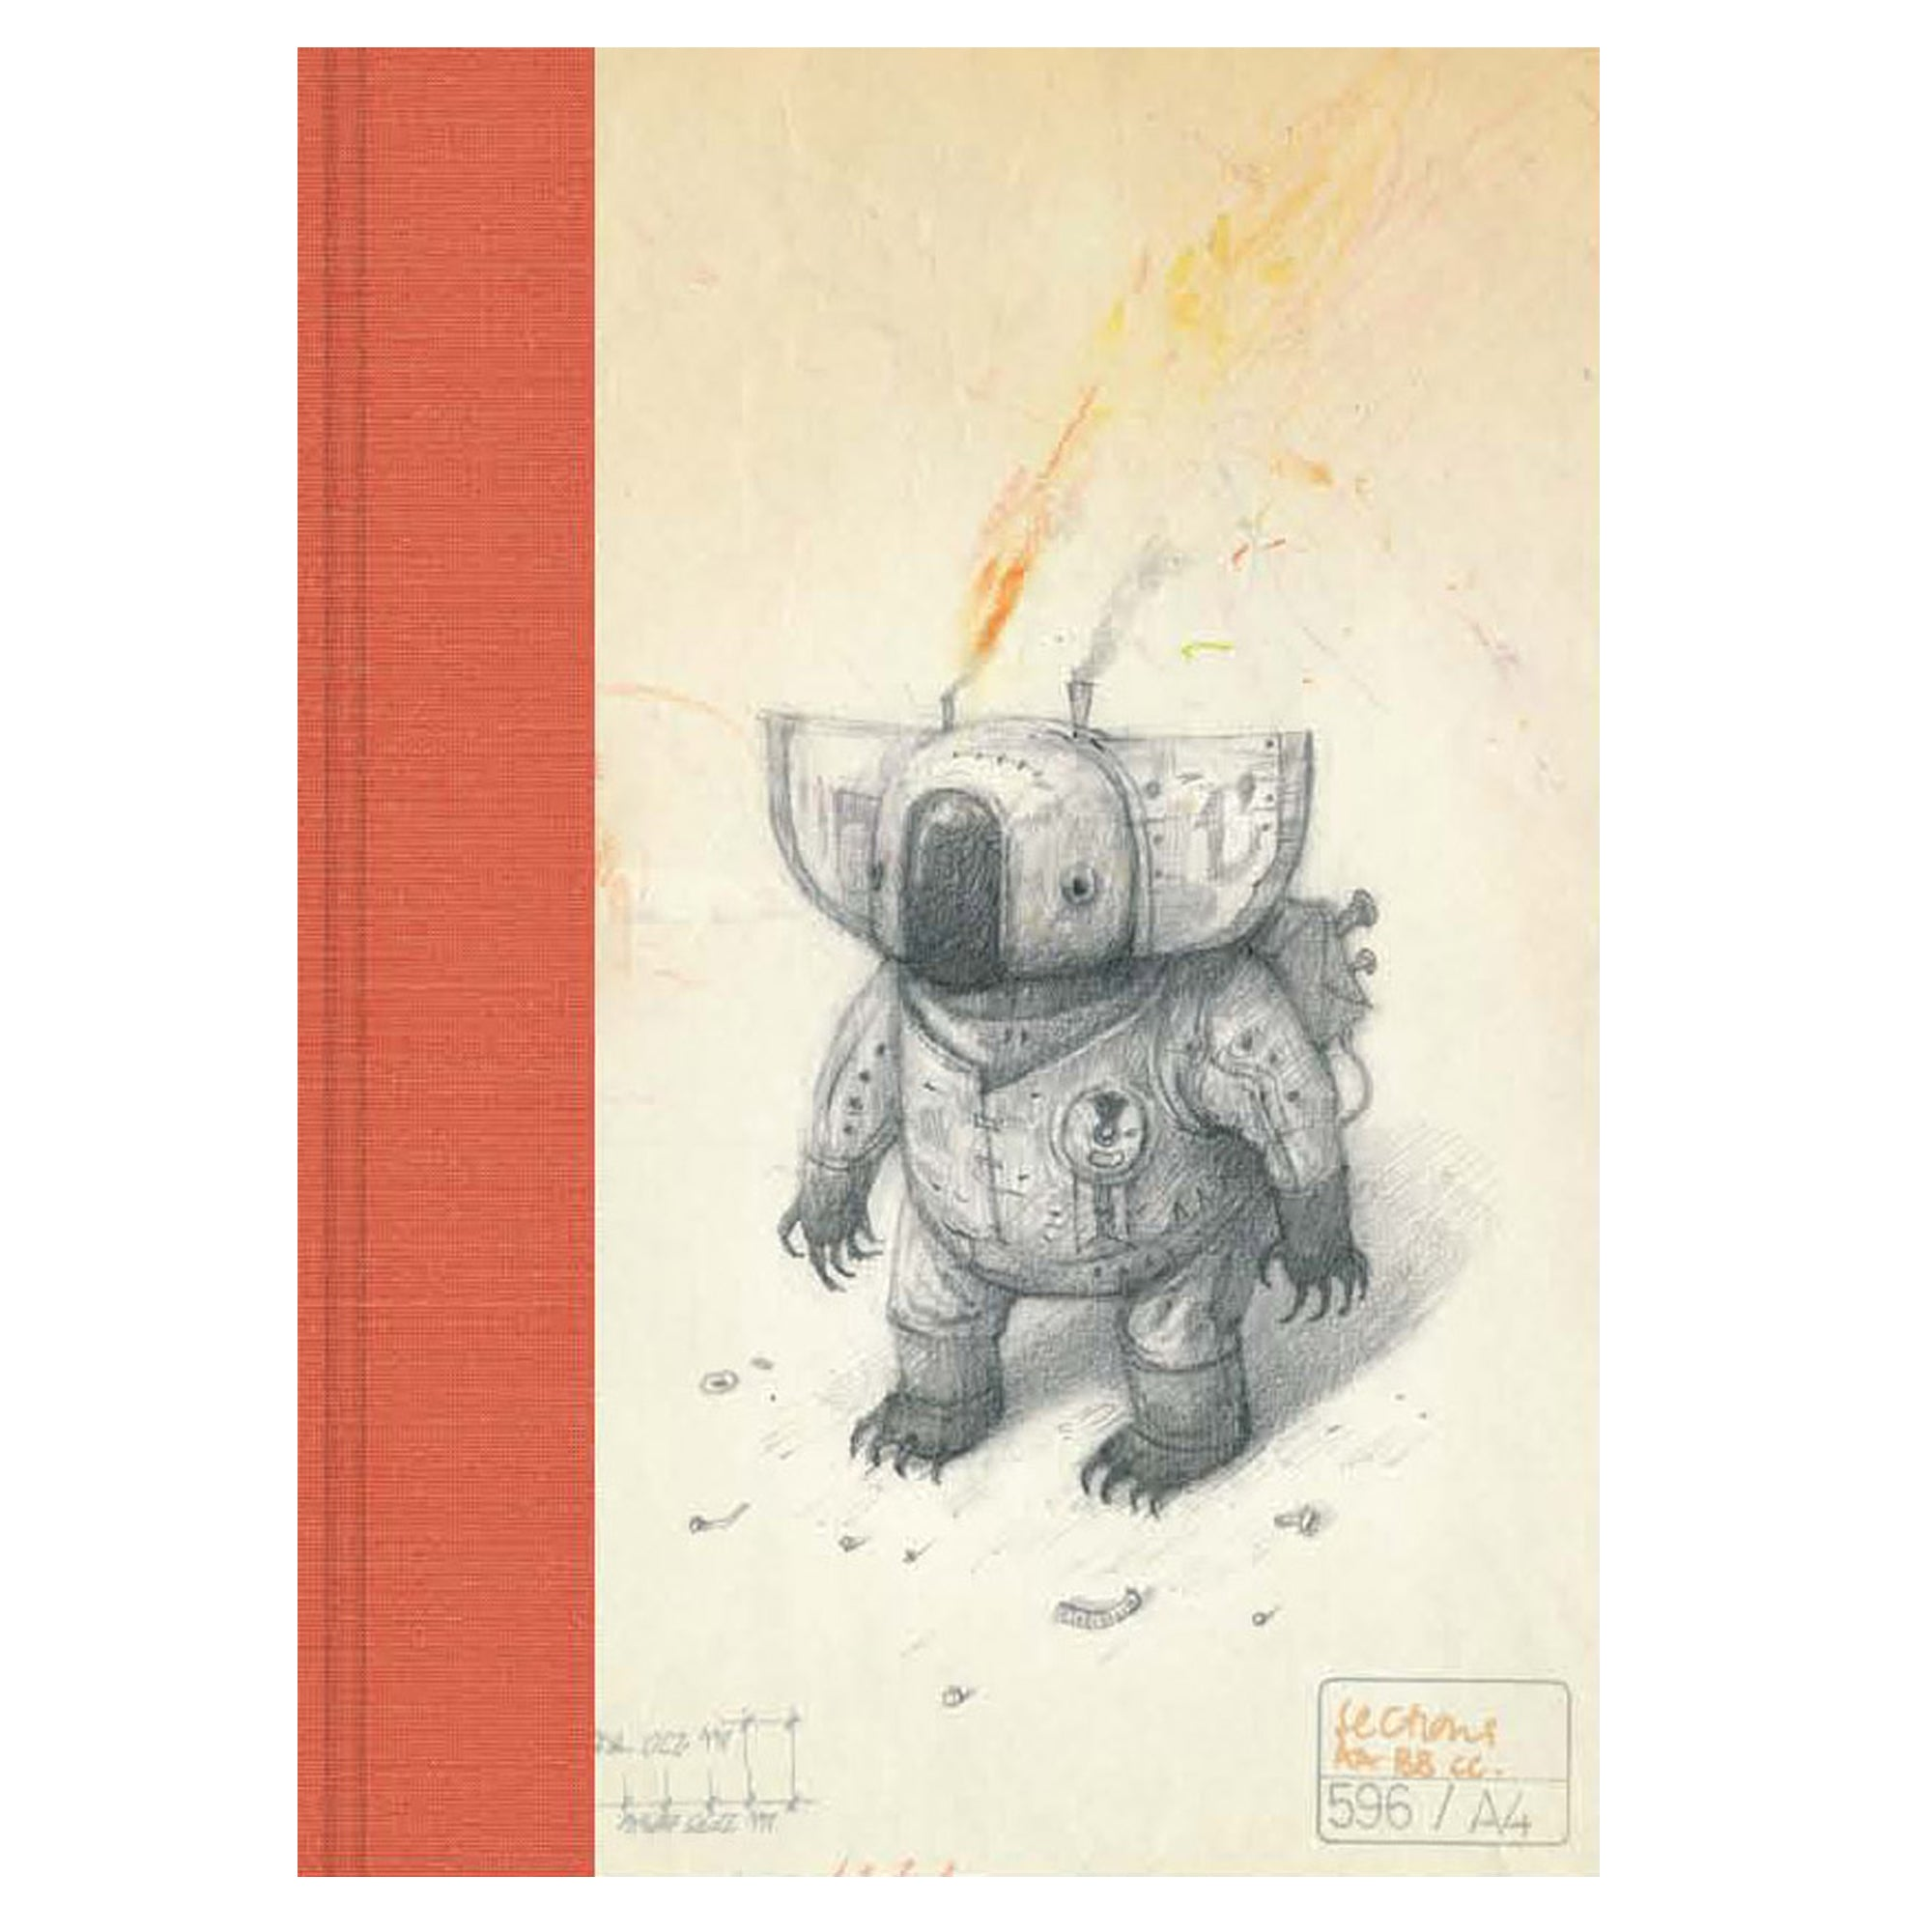 Shaun Tan - 'Parafin Oil Koala' Blank Journal (m/nuo5)